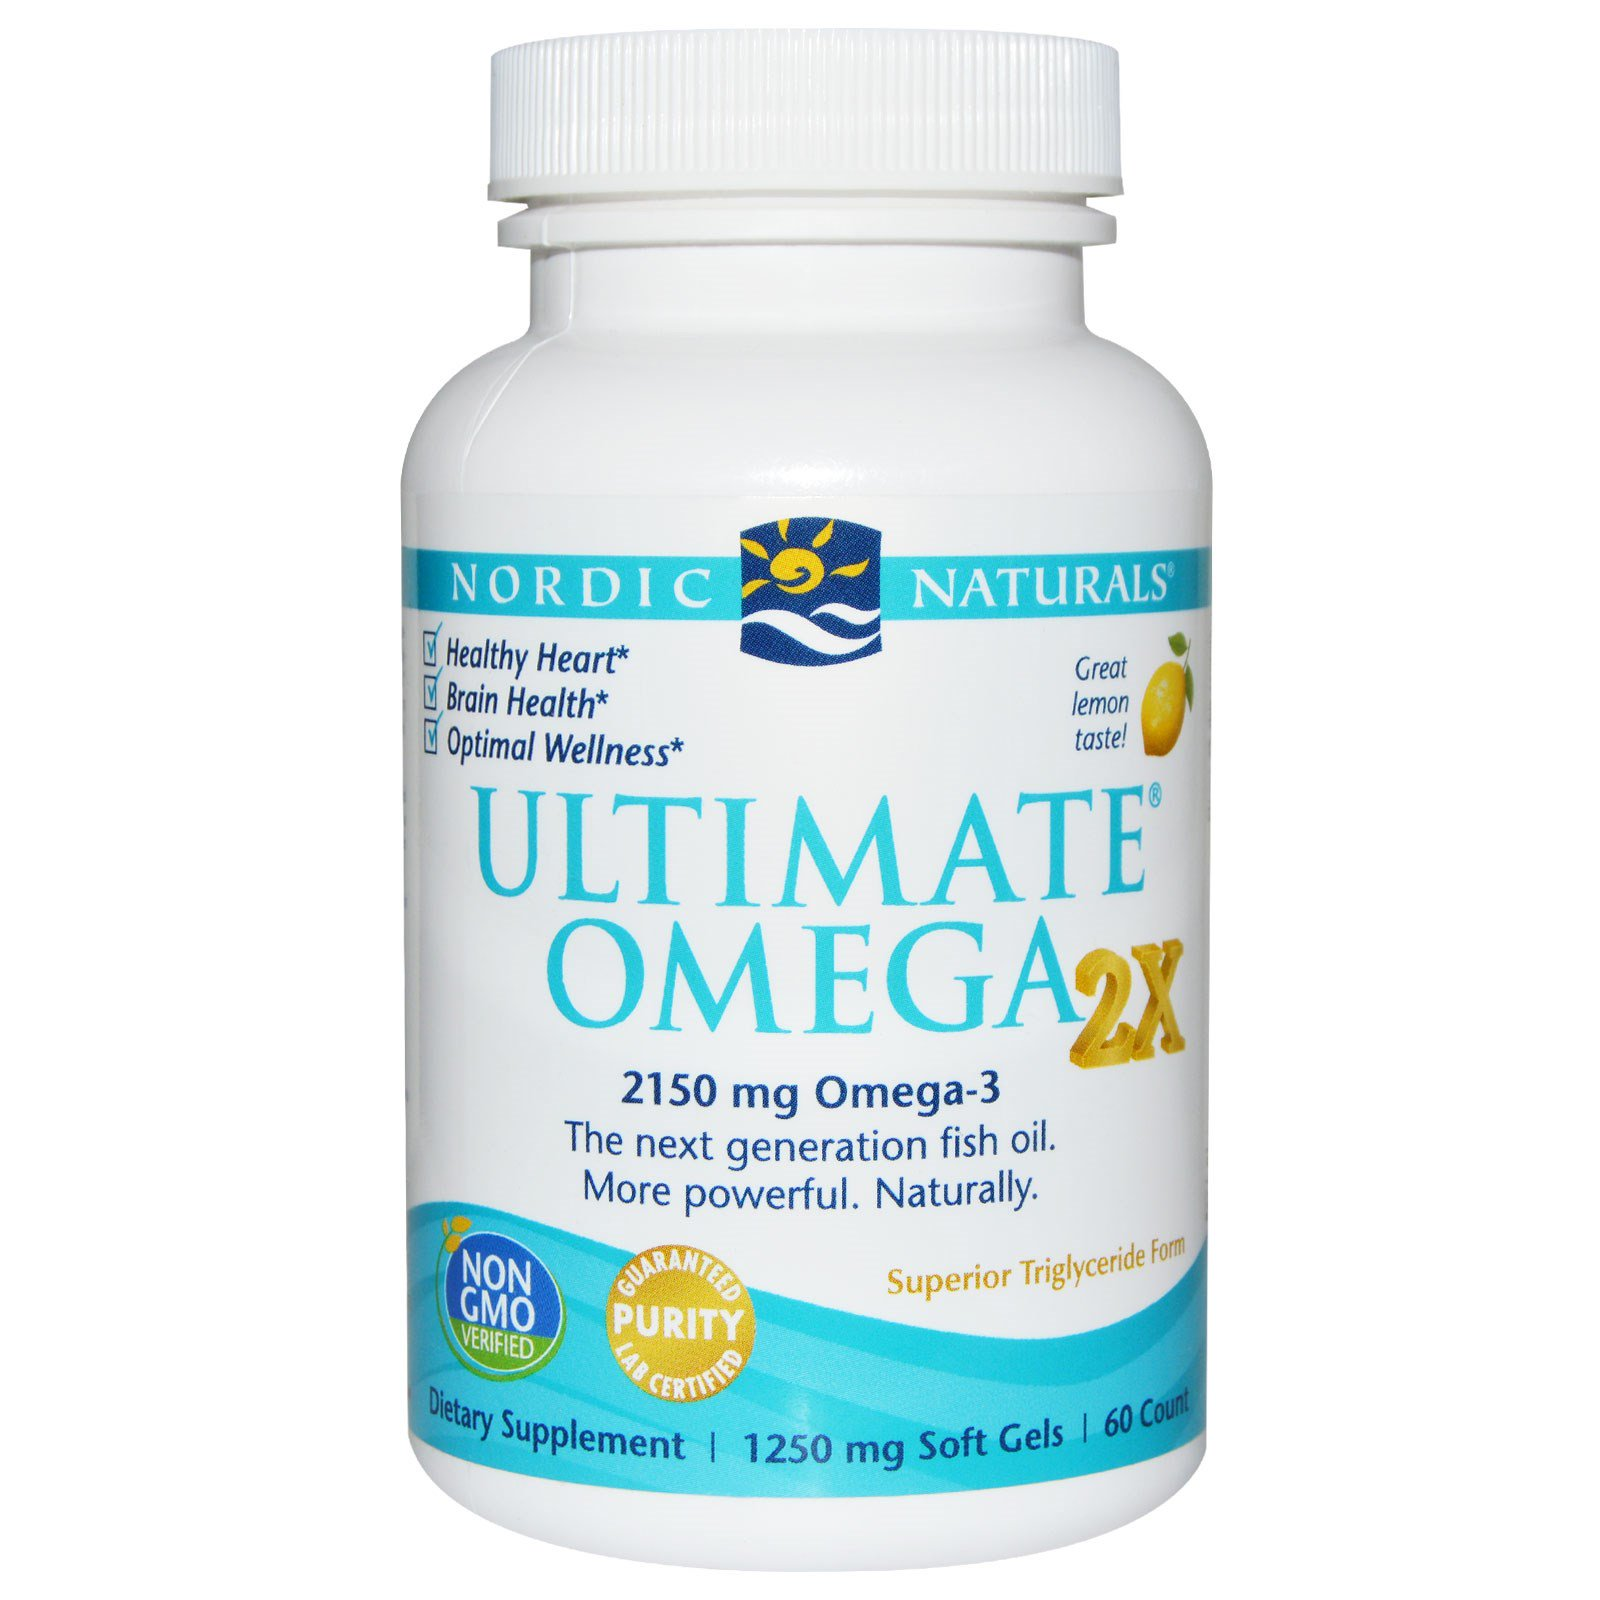 Nordic Naturals, Ultimate Omega 2x, Lemon, 60 Count